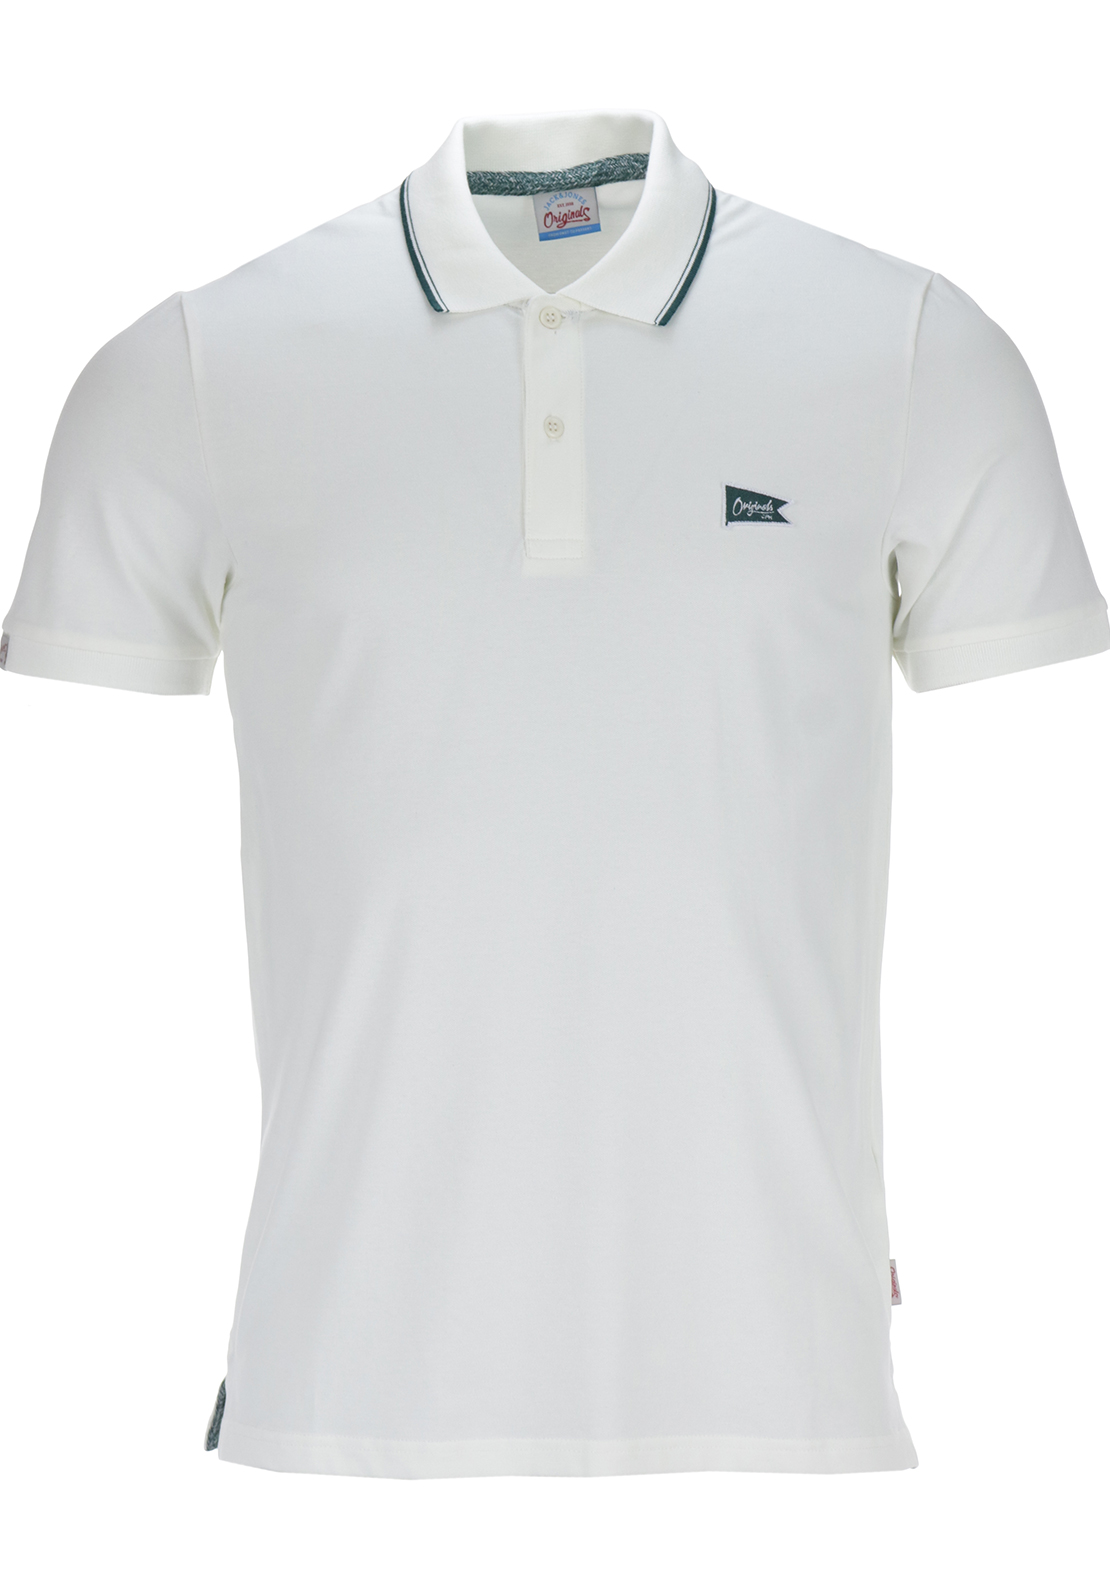 Jack & Jones Originals Mens Brand Short Sleeved Polo Shirt, White